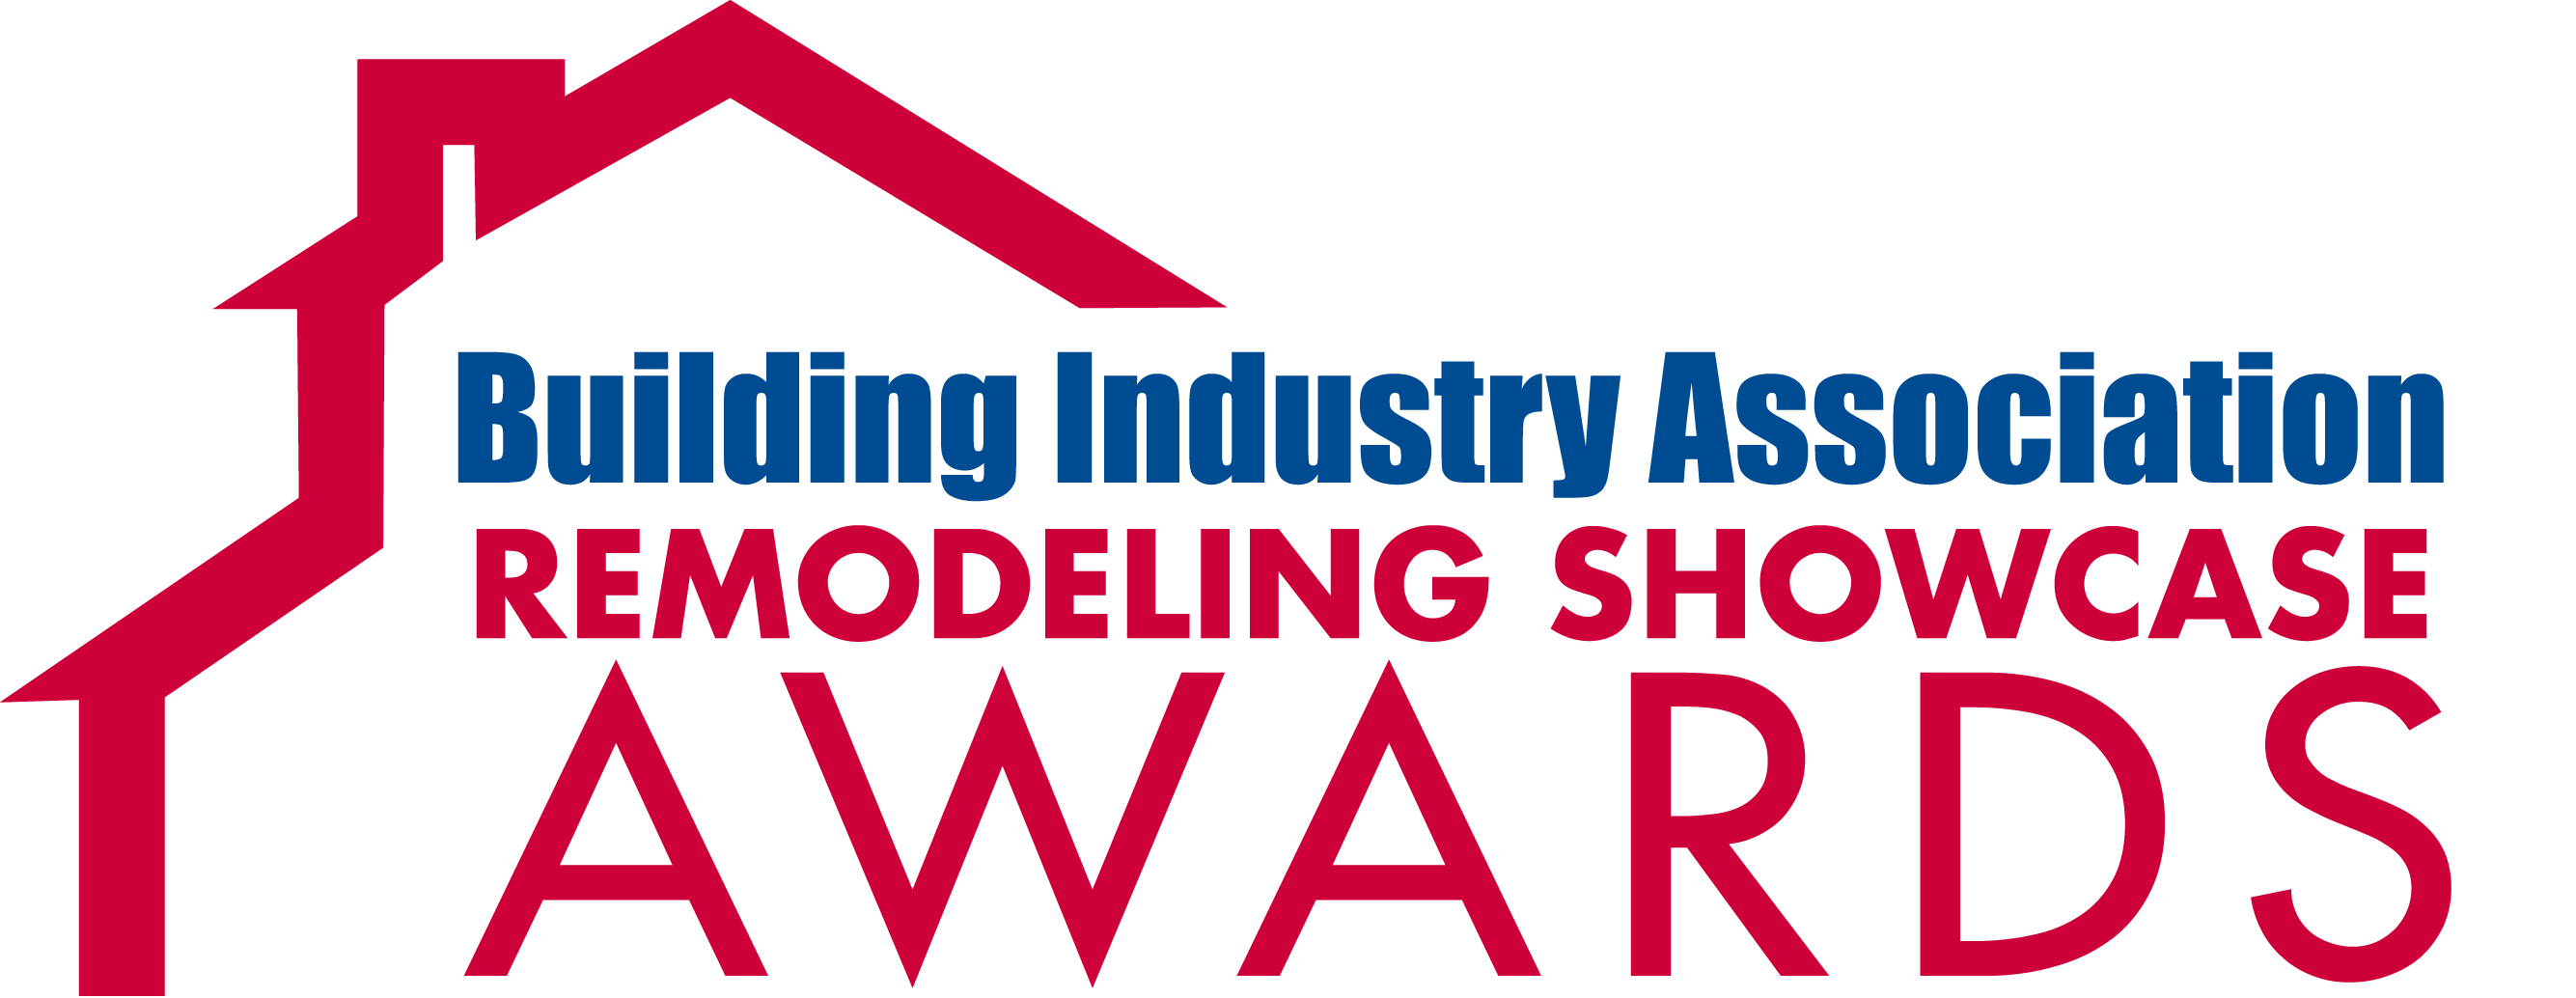 bia remodeling showcase awards logo